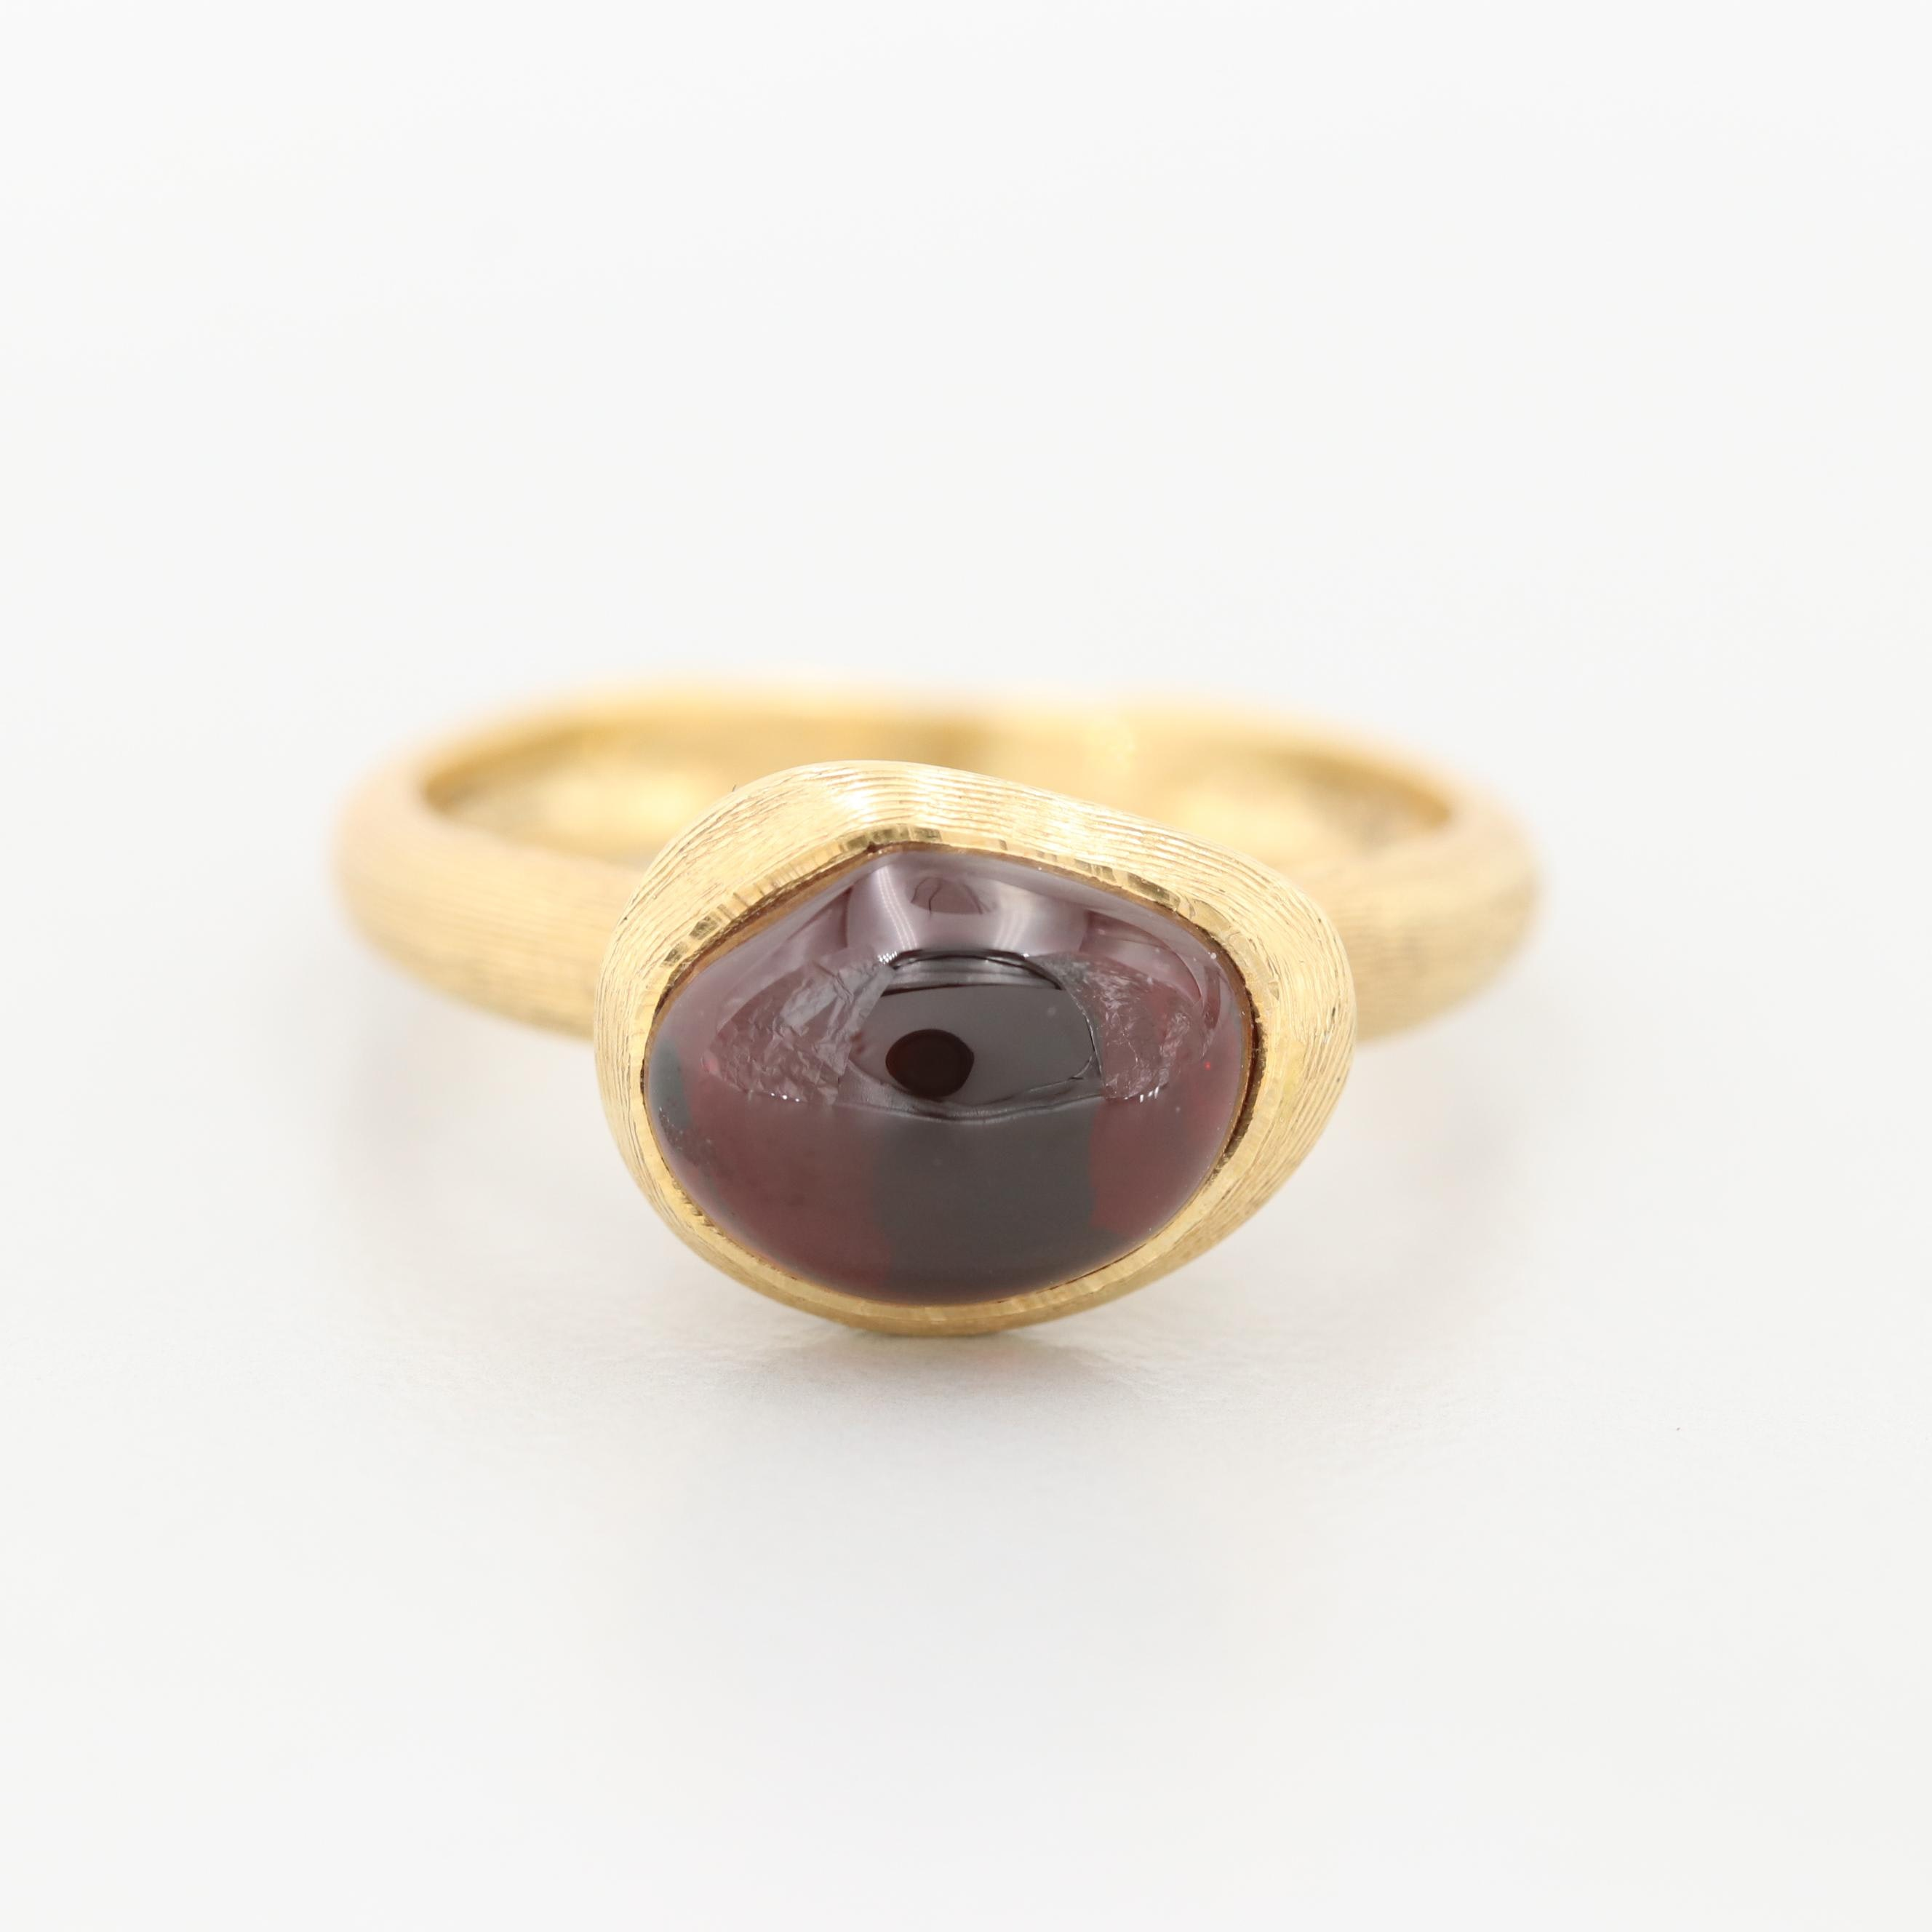 Marco Bicego 18K Yellow Gold Garnet Ring with Brushed Finish